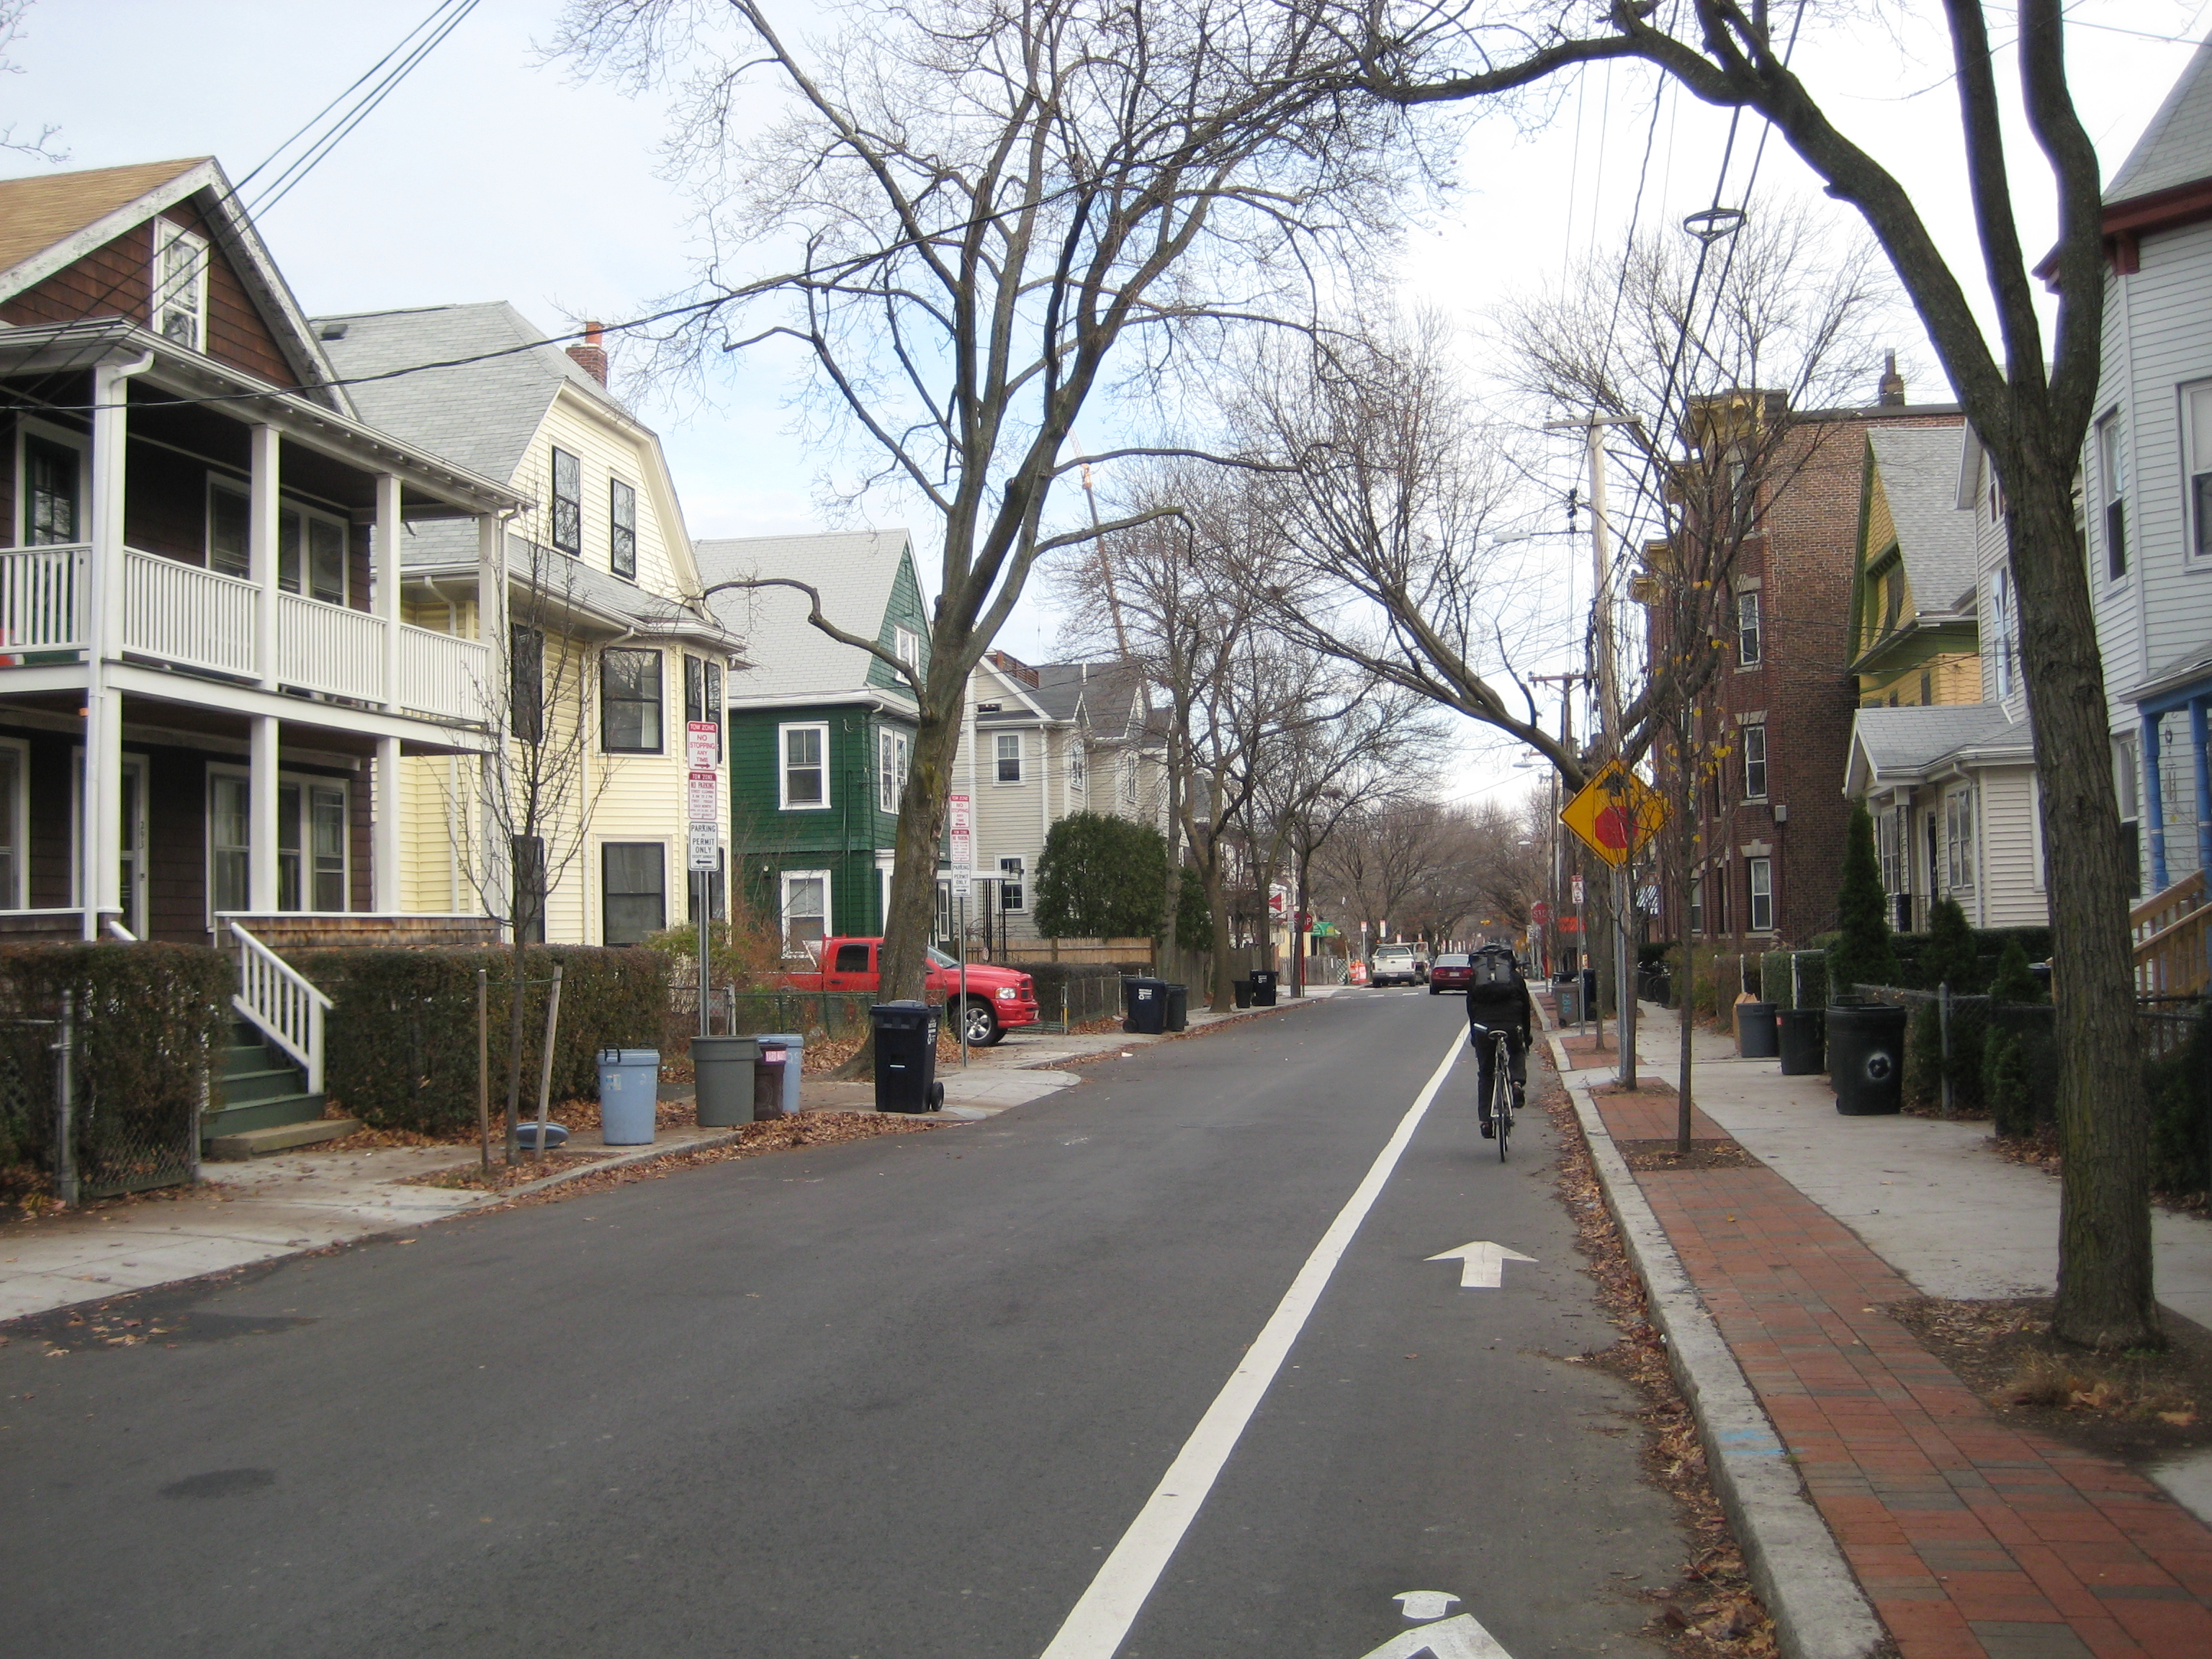 Brookline Street after wider sidewalks and bicycle lane added